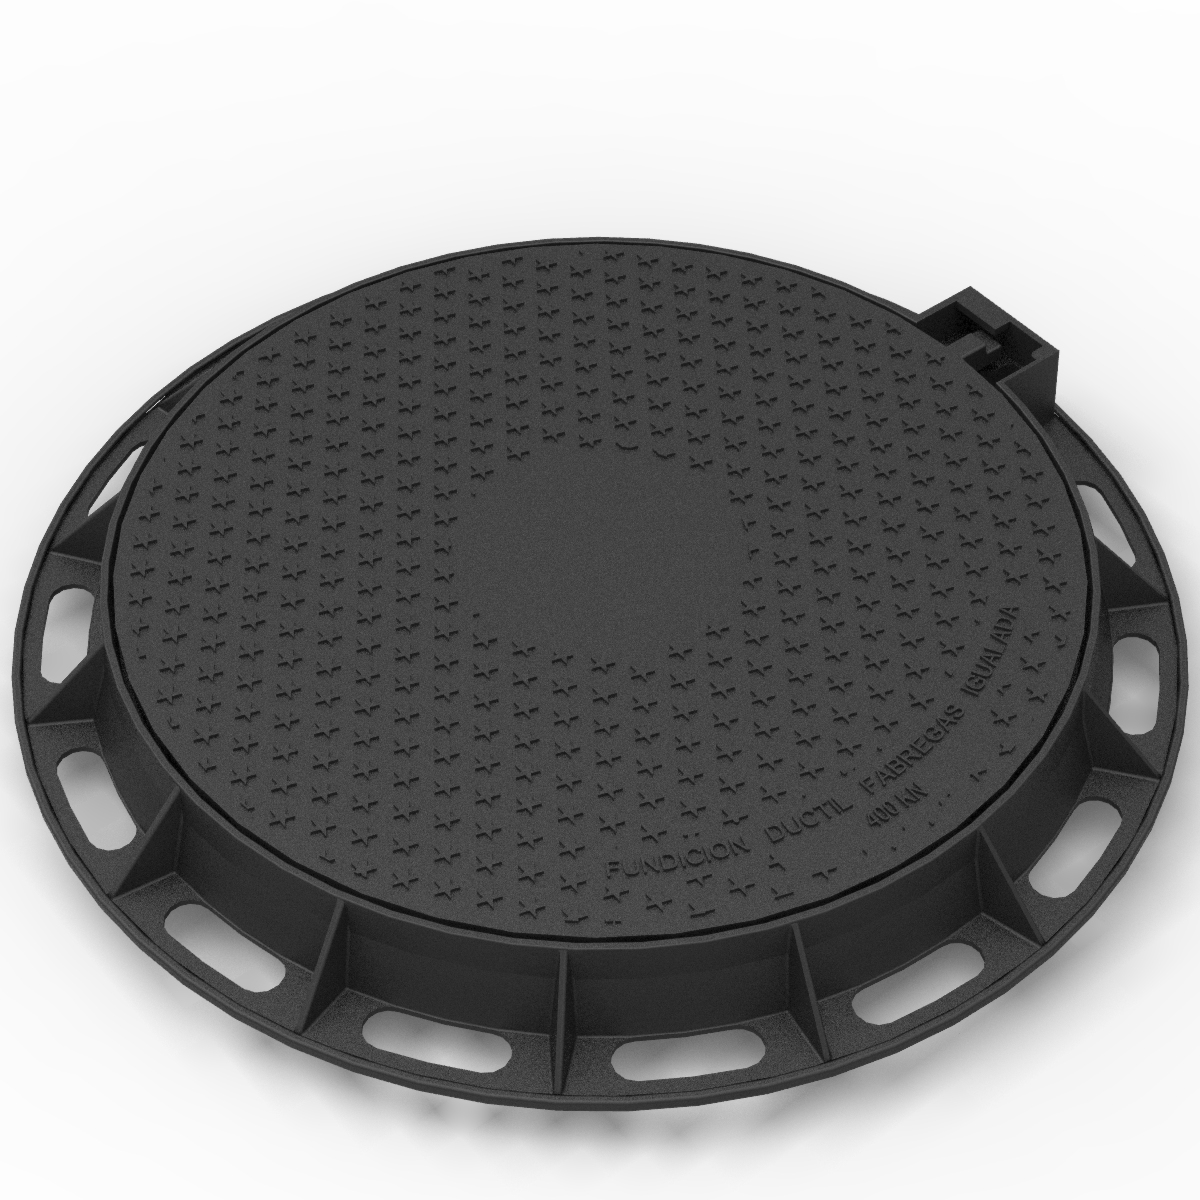 Manhole Cover and ring of locking registry in ductile casting D-1P DIAM580